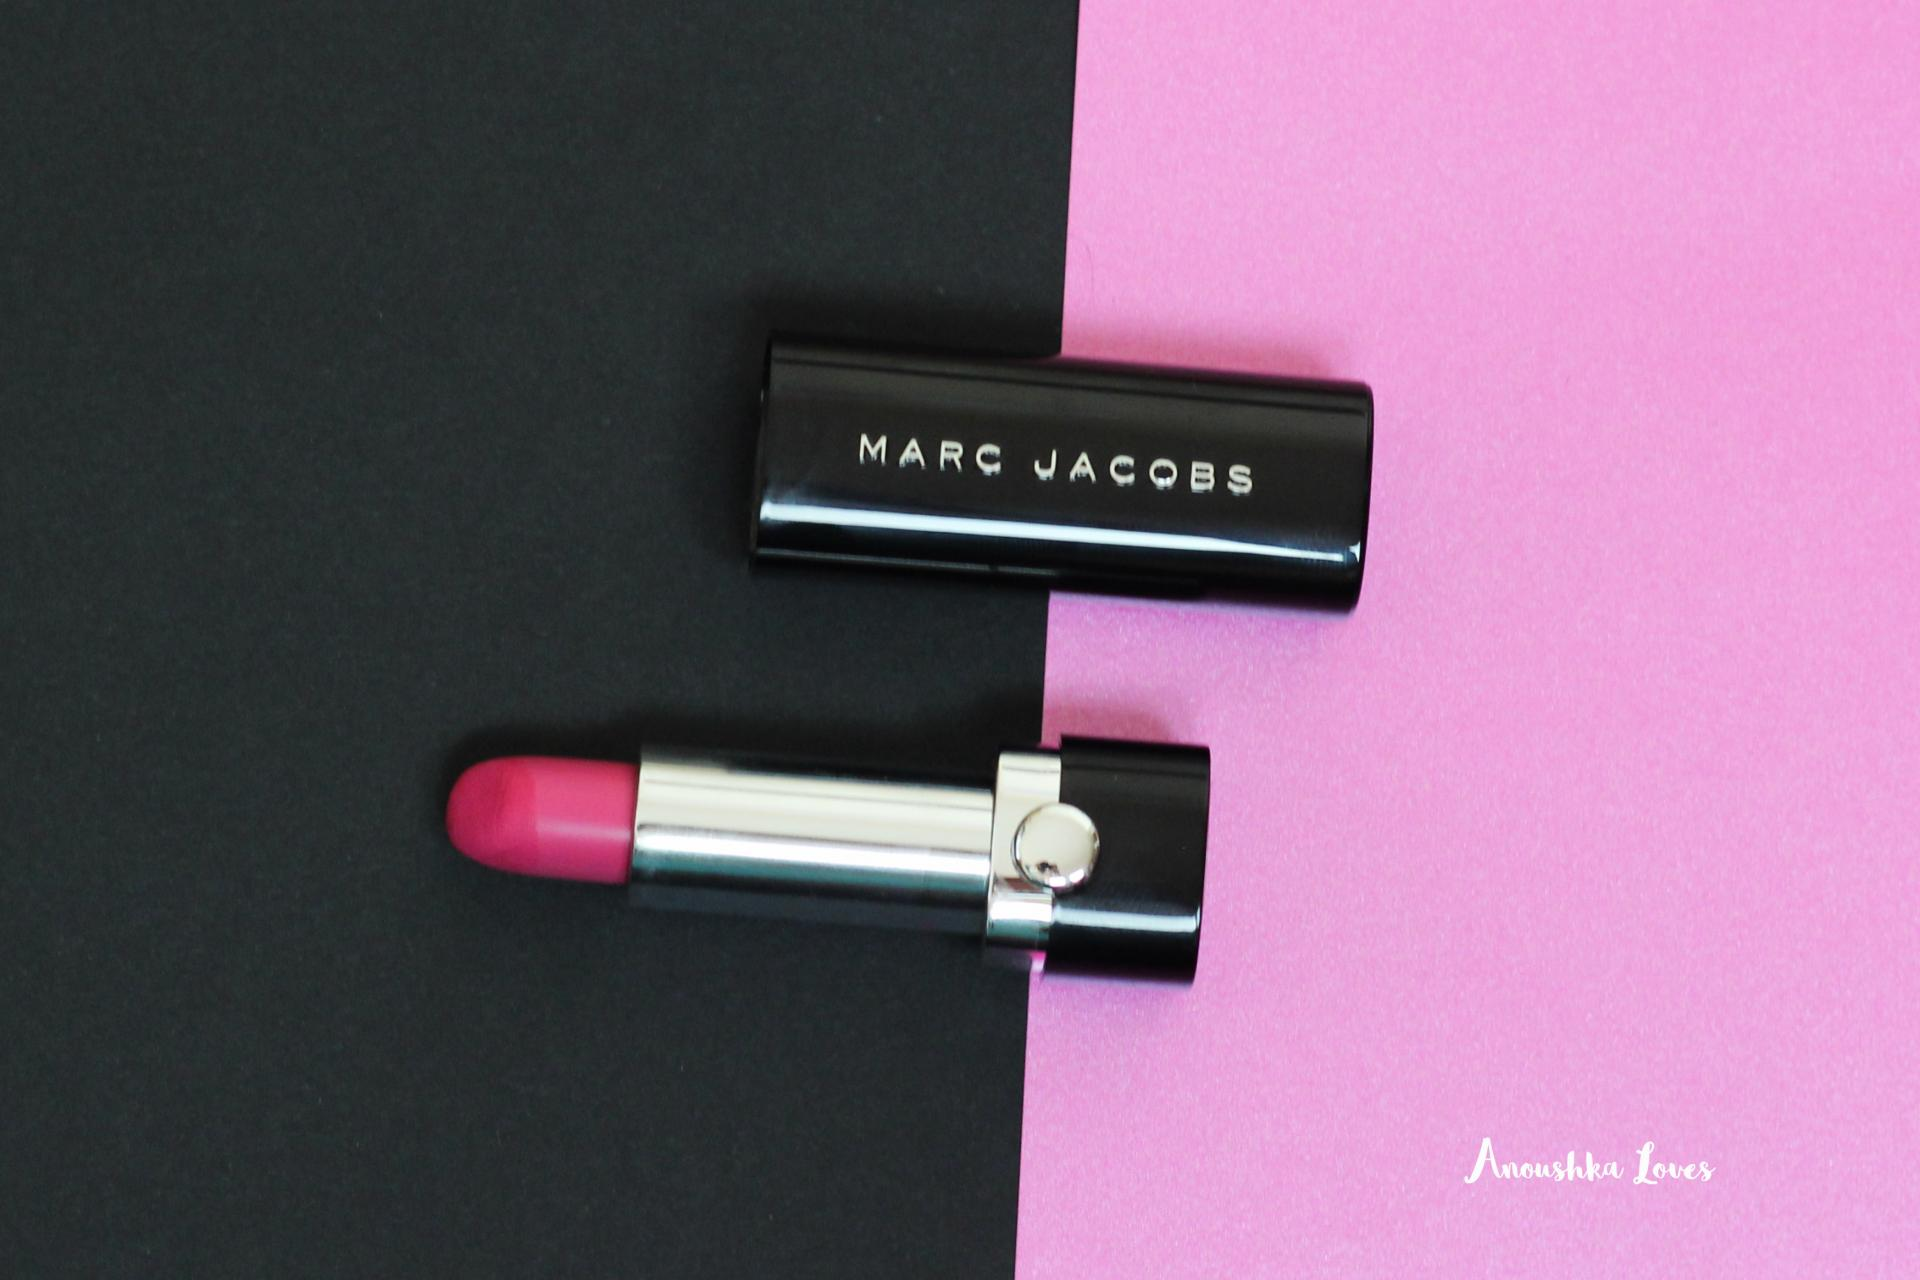 Marc Jacobs Beauty x Lady Gaga Coachella Inspired Makeup le marc lip creme Clara